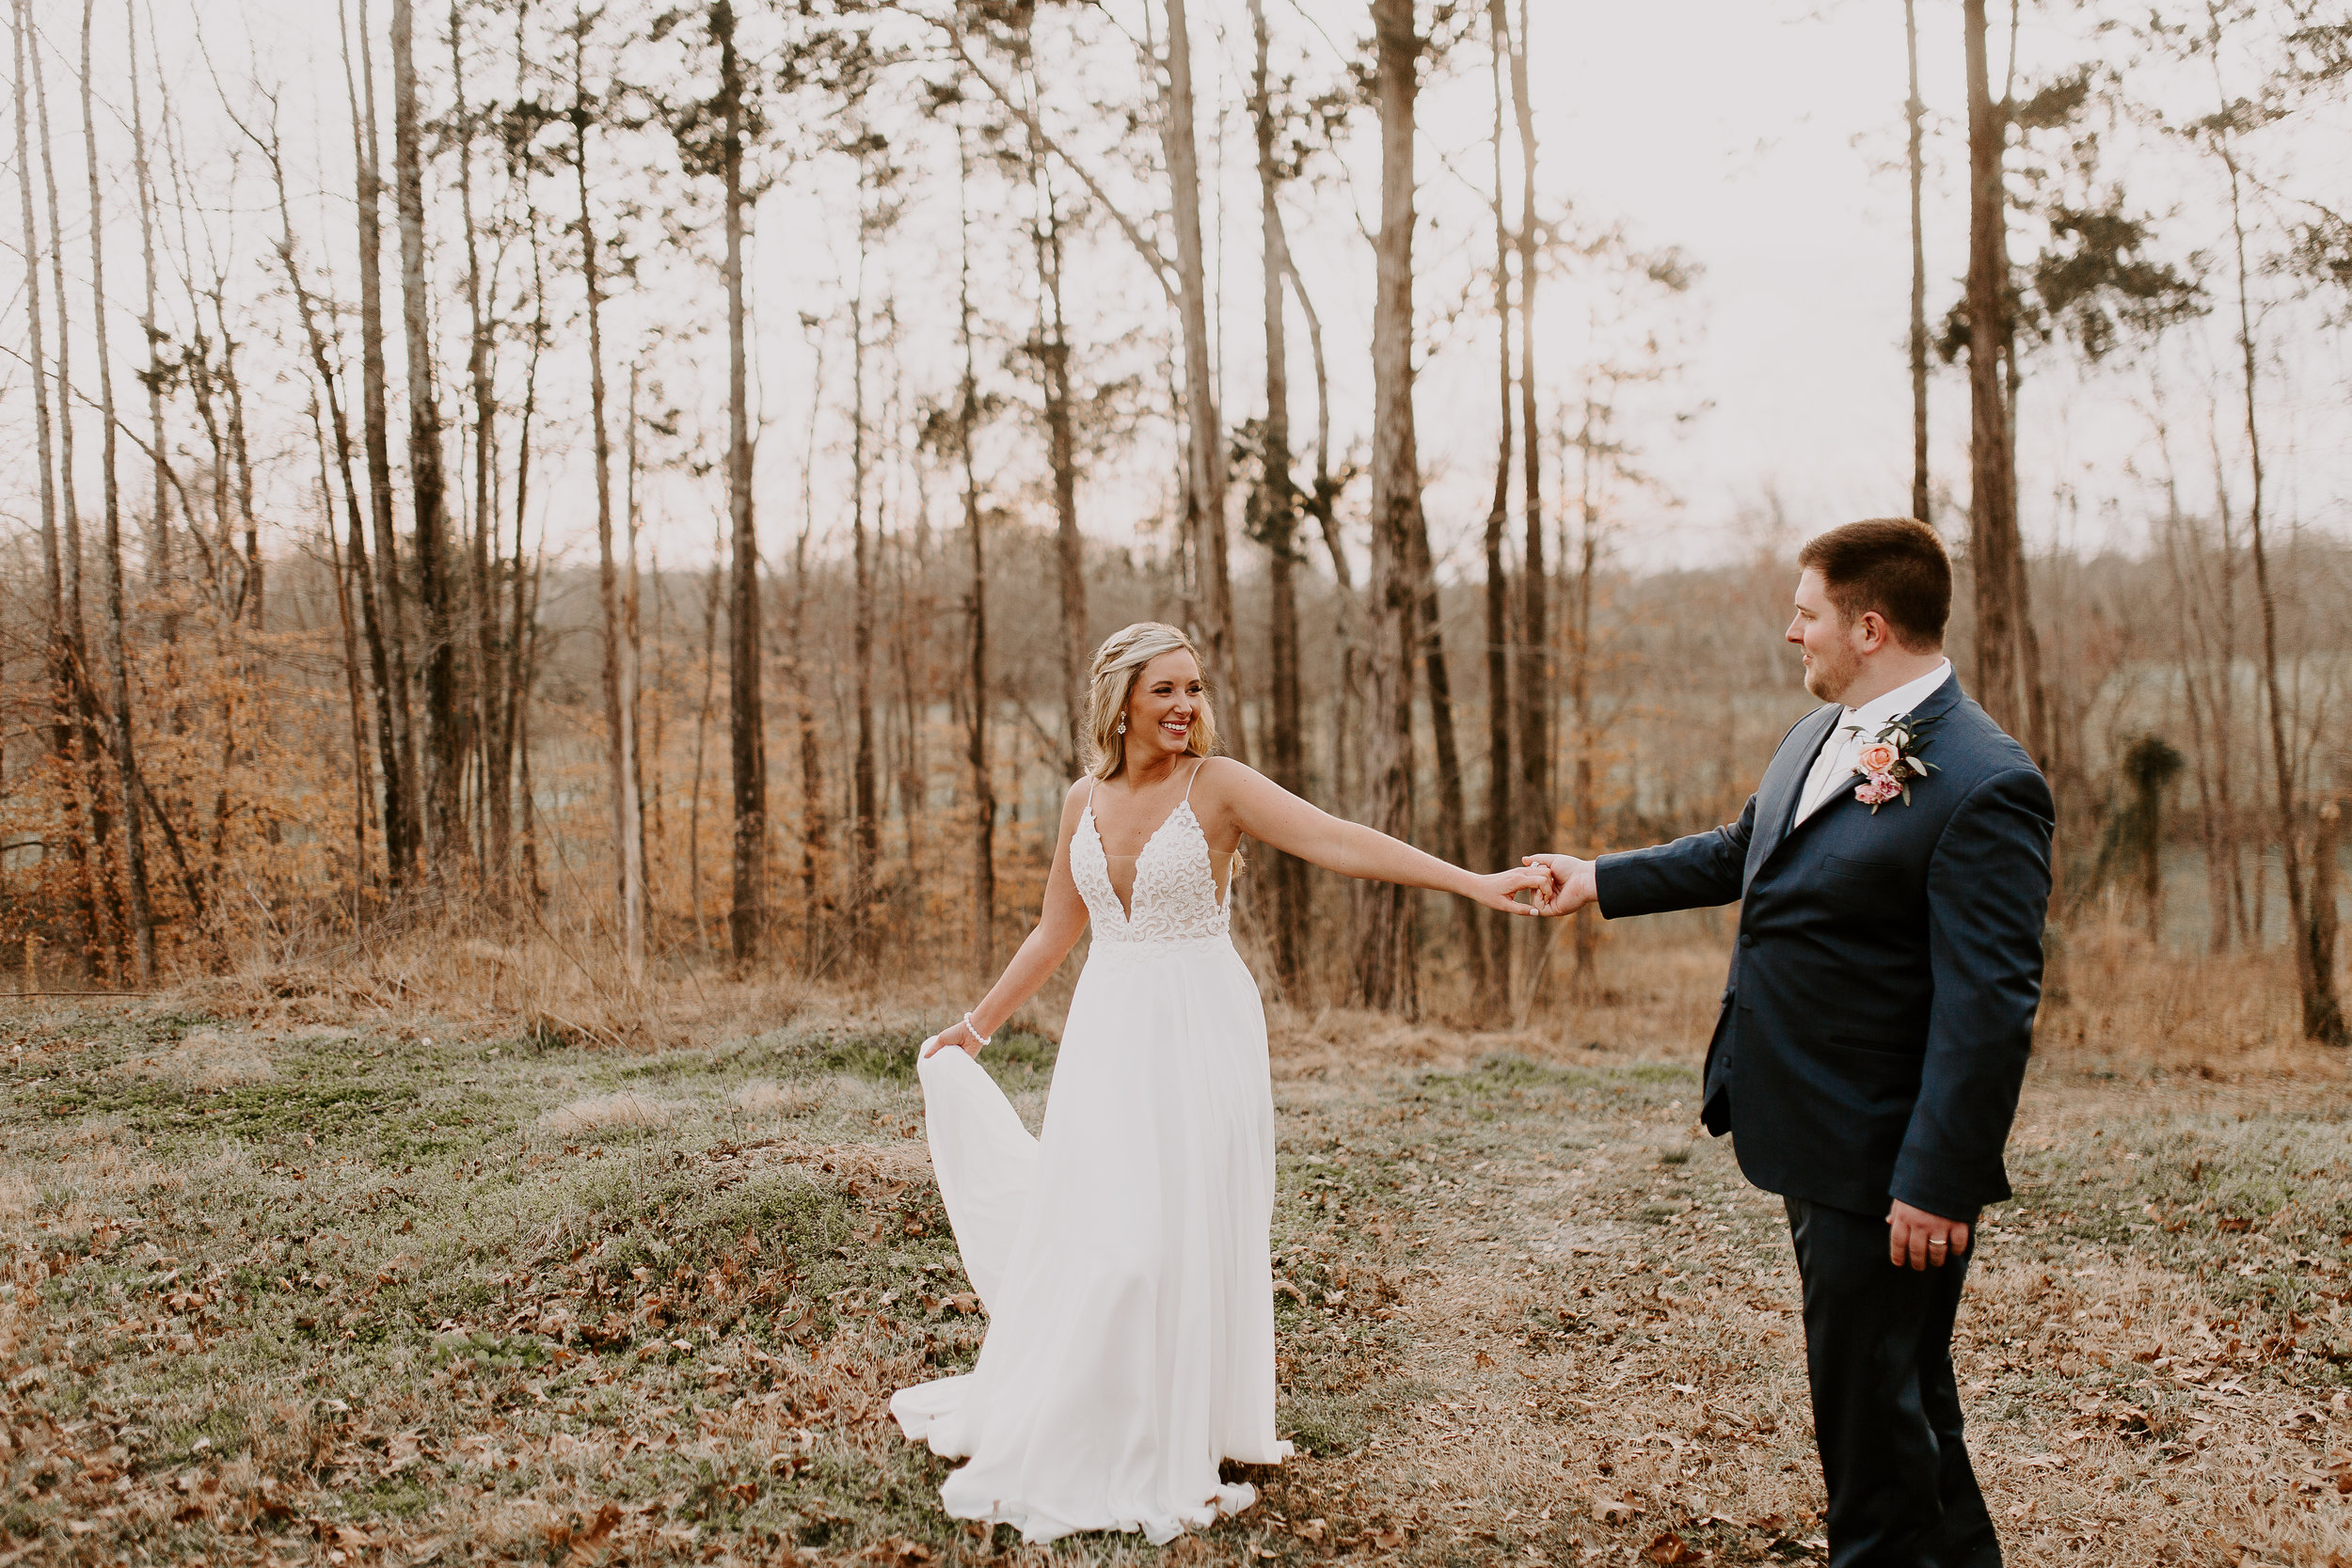 Bride and Groom Dancing in the woods